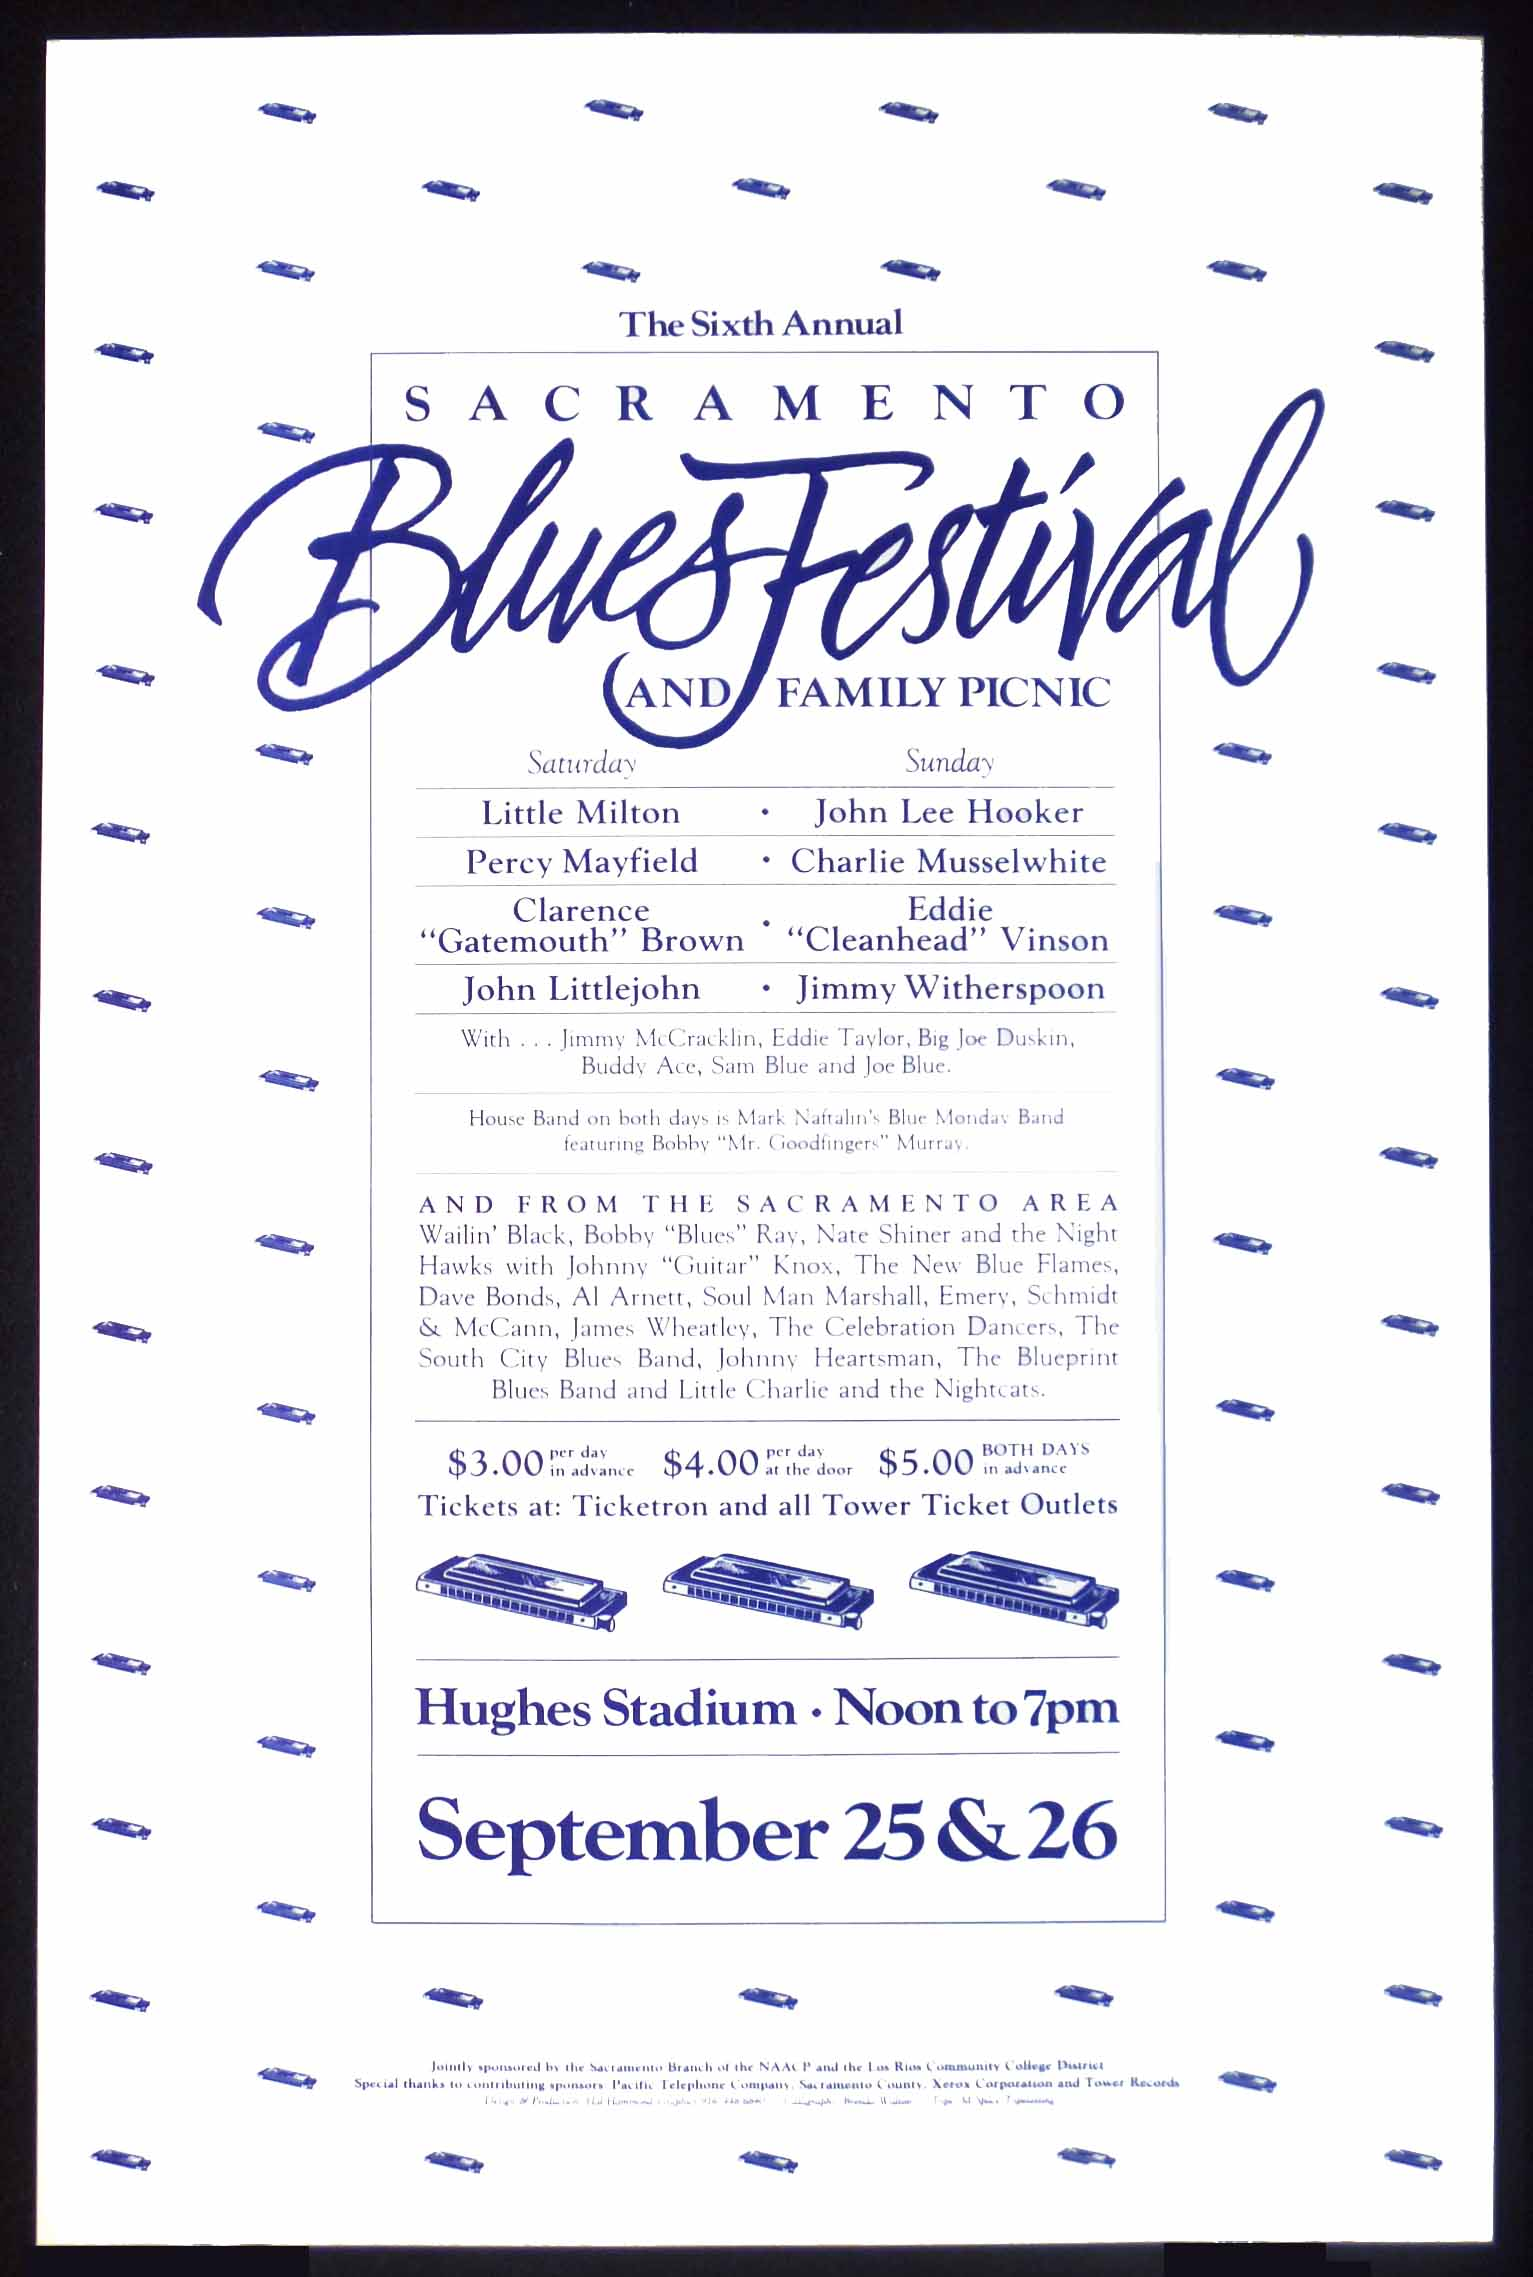 6th sacramento blues festival poster john lee hooker charlie 1982 poster for the sacramento 6th annual blues festival featuring john lee hooker little milton percy mayfield charlie musselwhite malvernweather Image collections